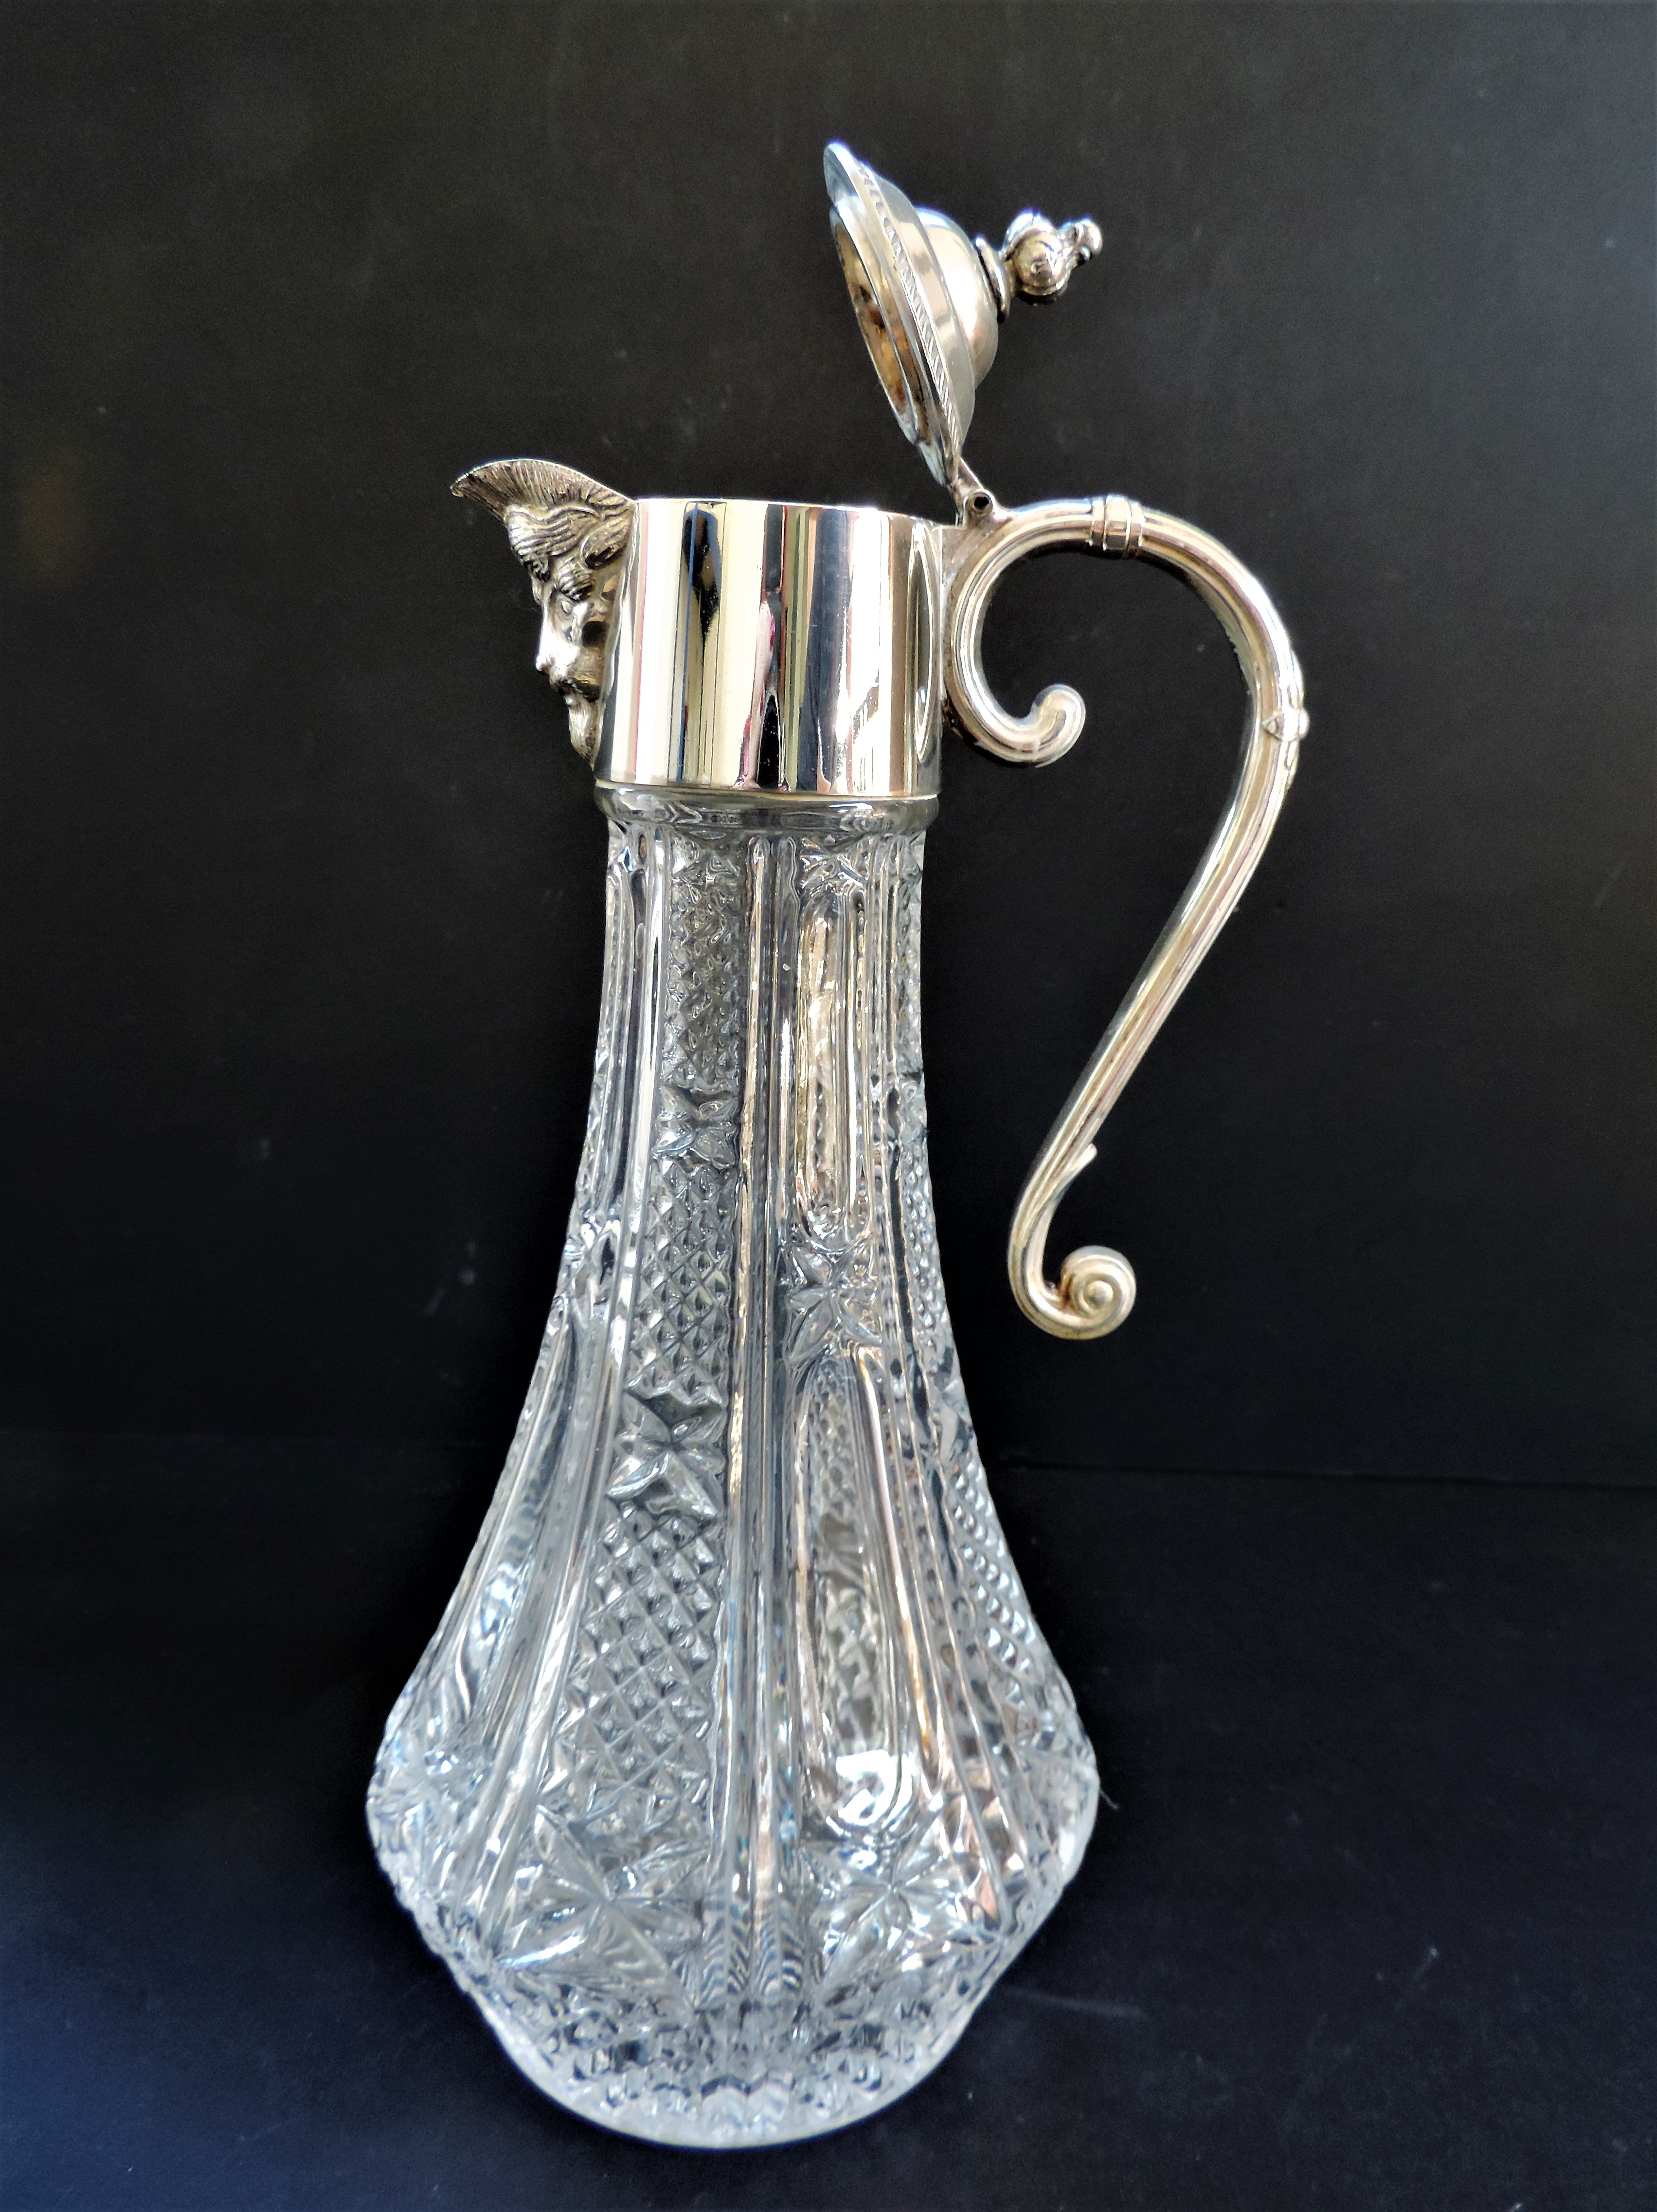 Hand-Cut Crystal And Silver Plate Bacchus Claret Jug - Image 2 of 4